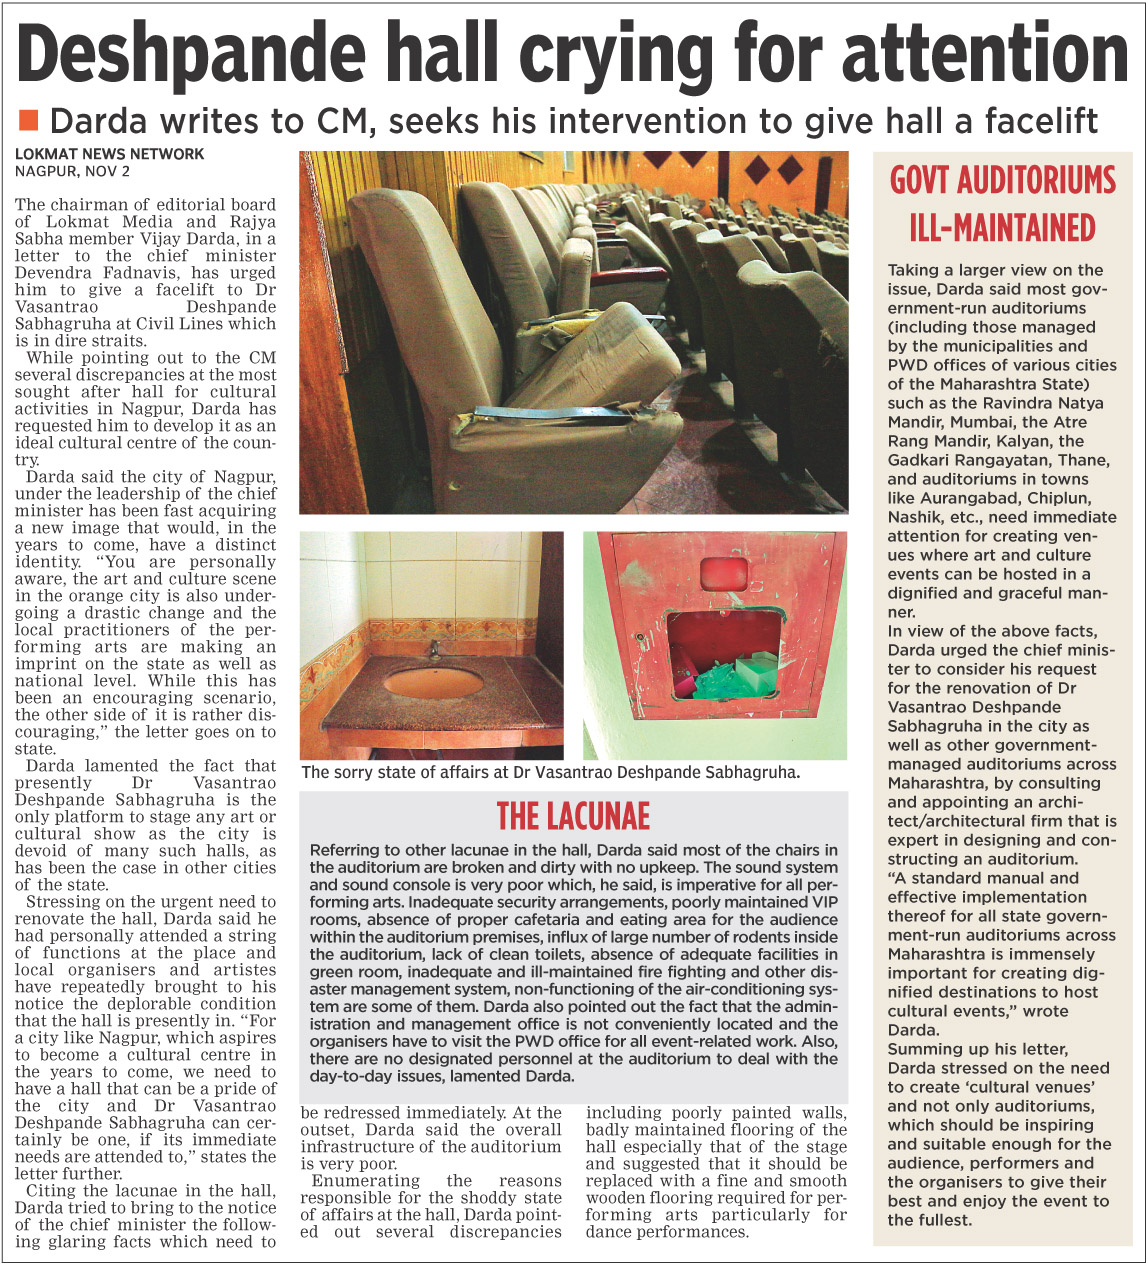 Deshpande hall crying for attention